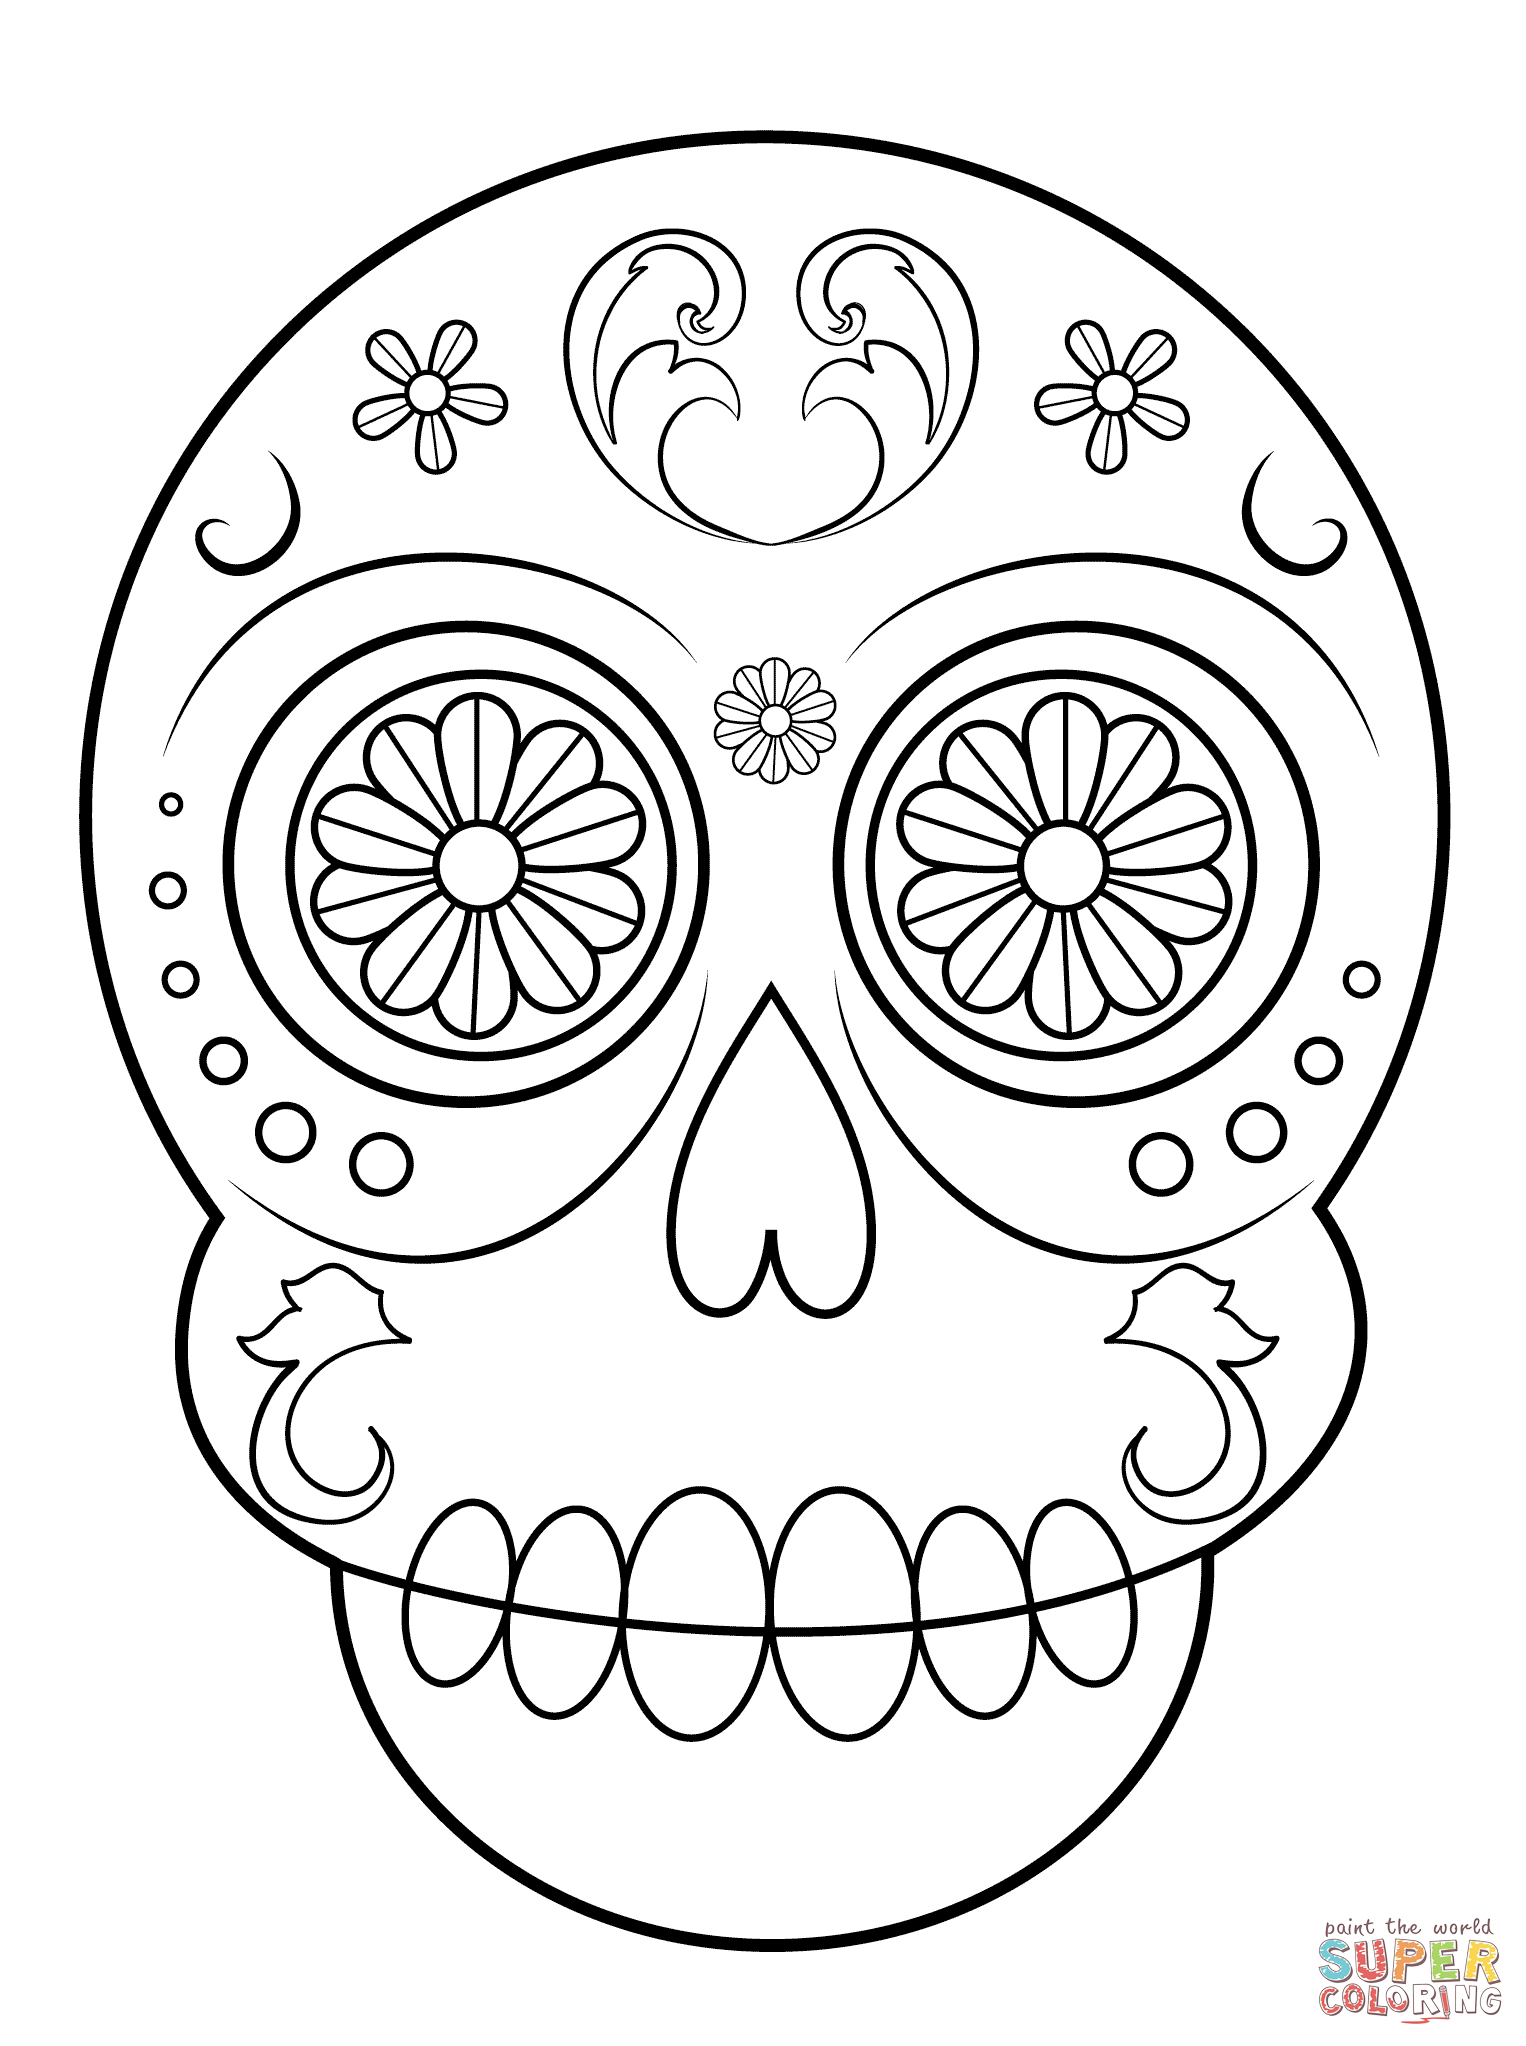 Simple Sugar Skull coloring page from Sugar Skulls category. Select ...